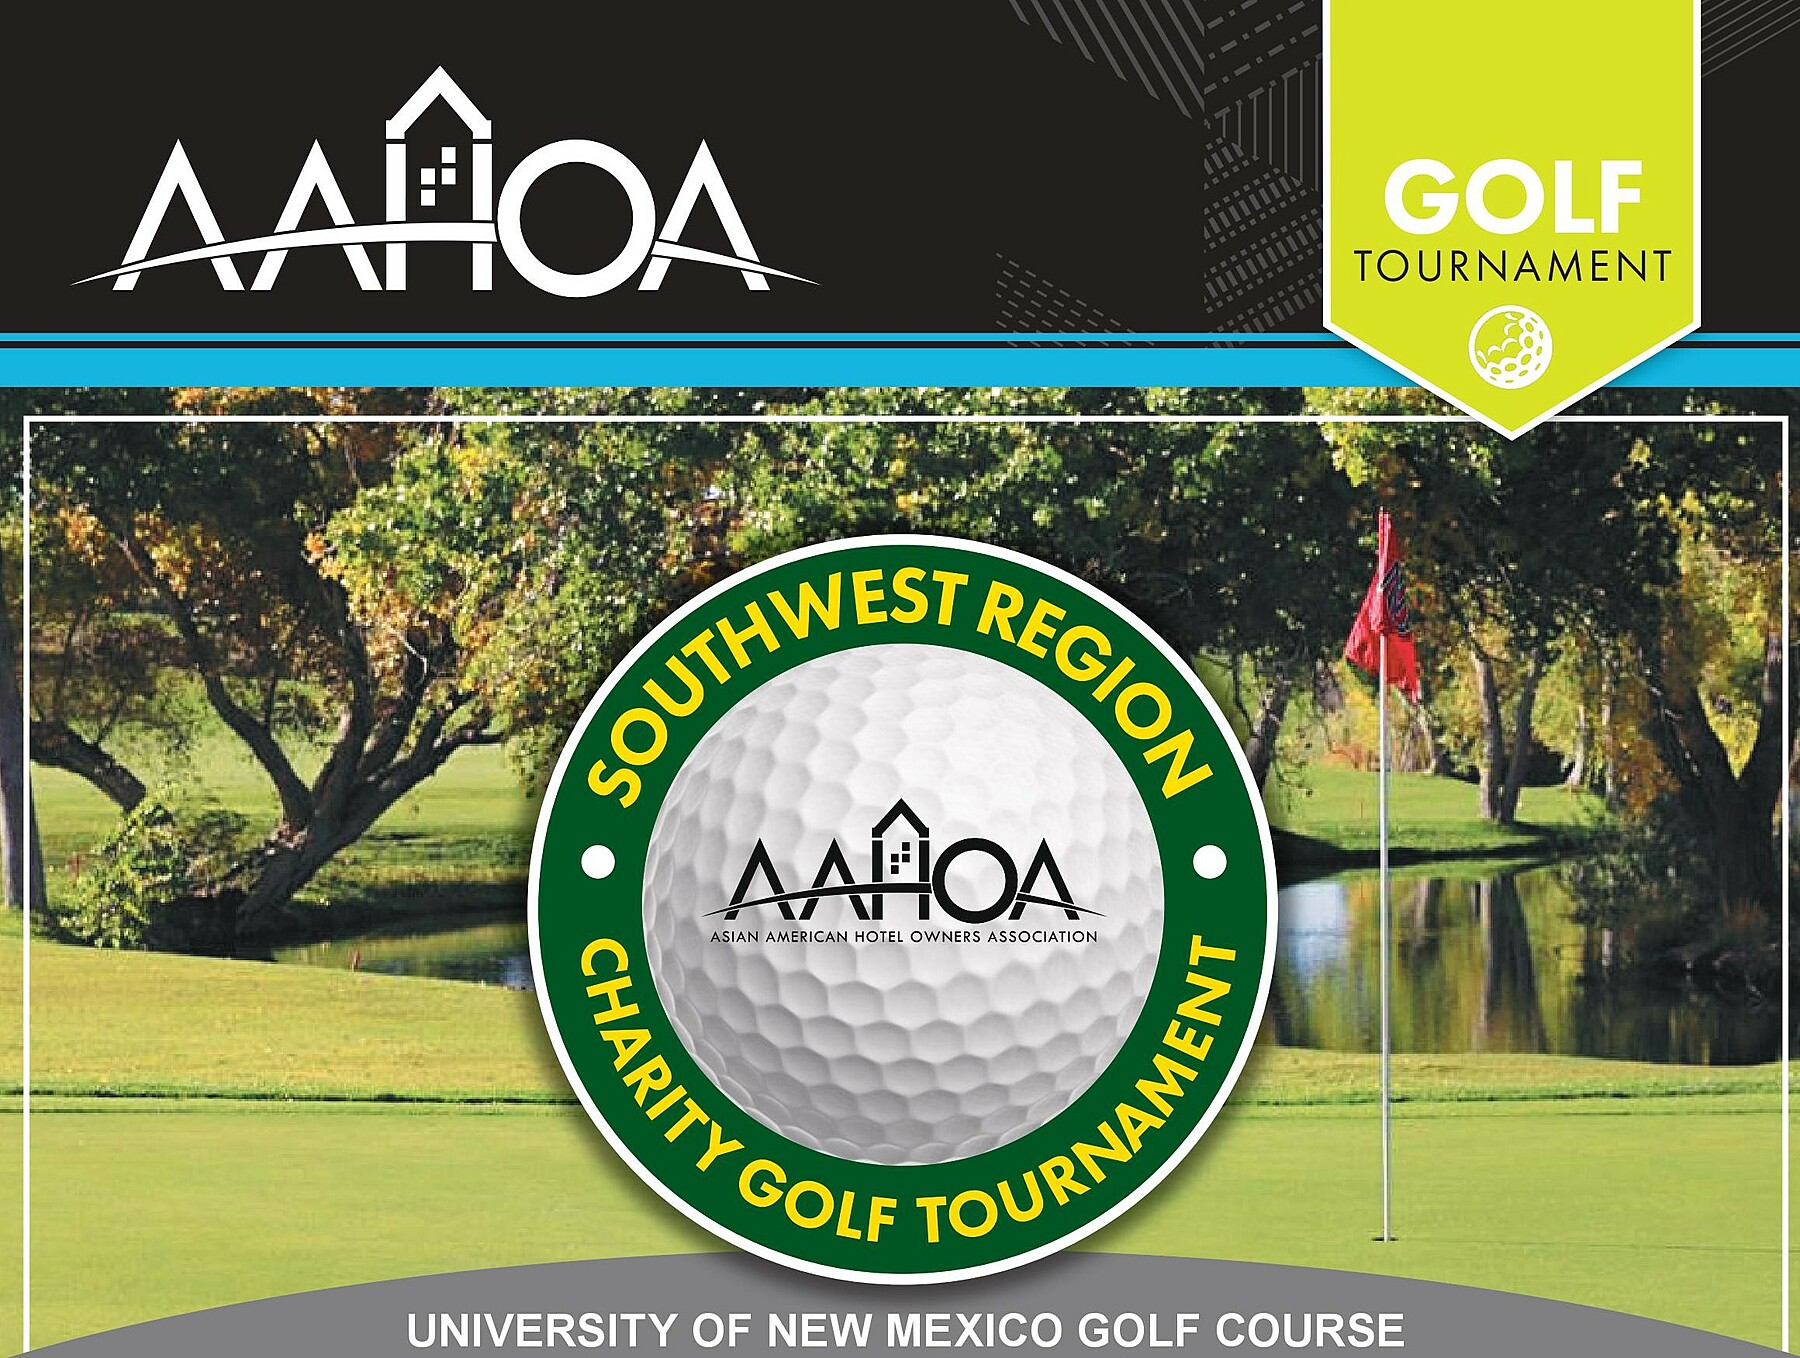 Asian American Hotel Owners Association, Inc.: 2020 Southwest Charity Golf- Attendee